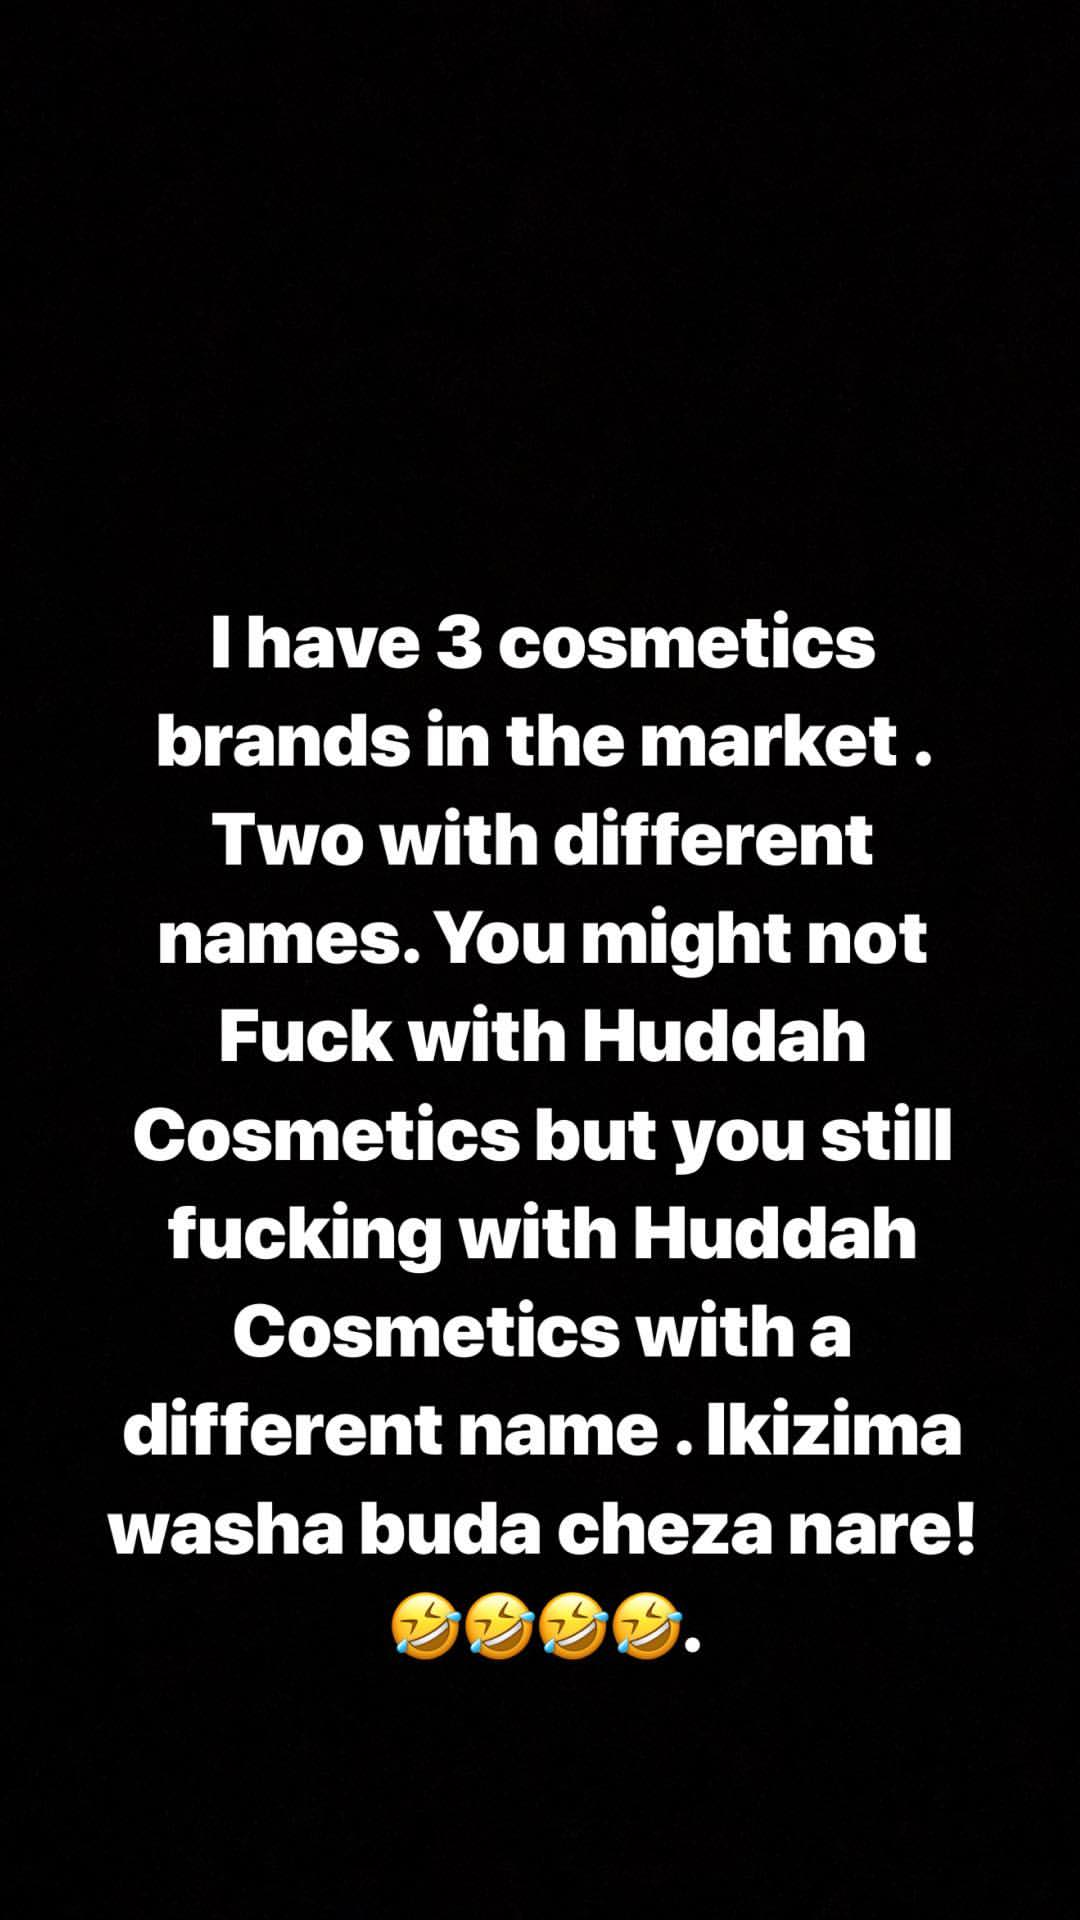 57490426 1065547983652225 6213294285332462786 n - Huddah Monroe responds to claims she sells poor quality lipsticks